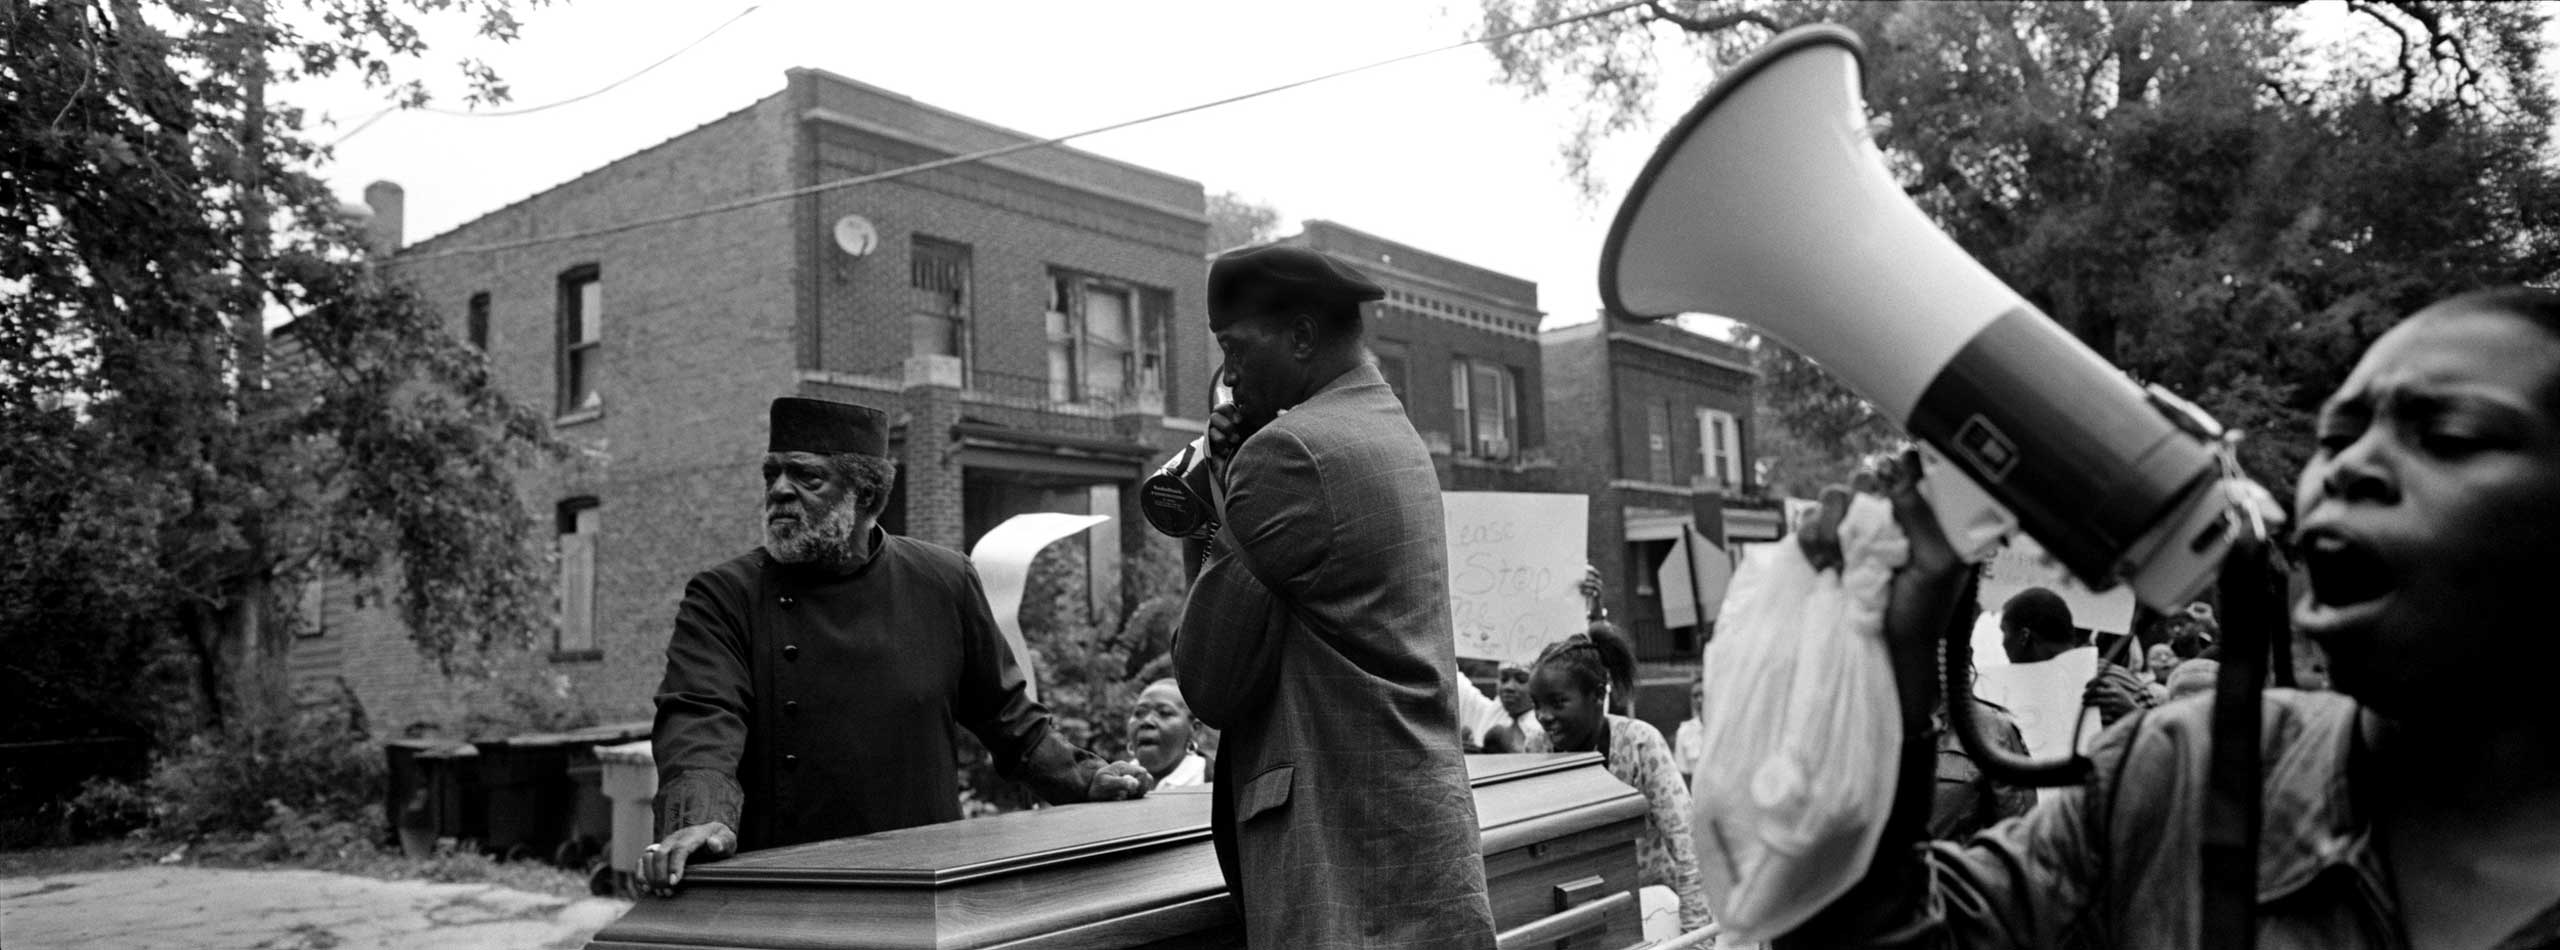 Angry community members, business owners and church pastors marched through Chicago's South Side to protest the overwhelming numbers of murders that took place in October of that year. Greater Grand Crossing, Chicago, 2009.